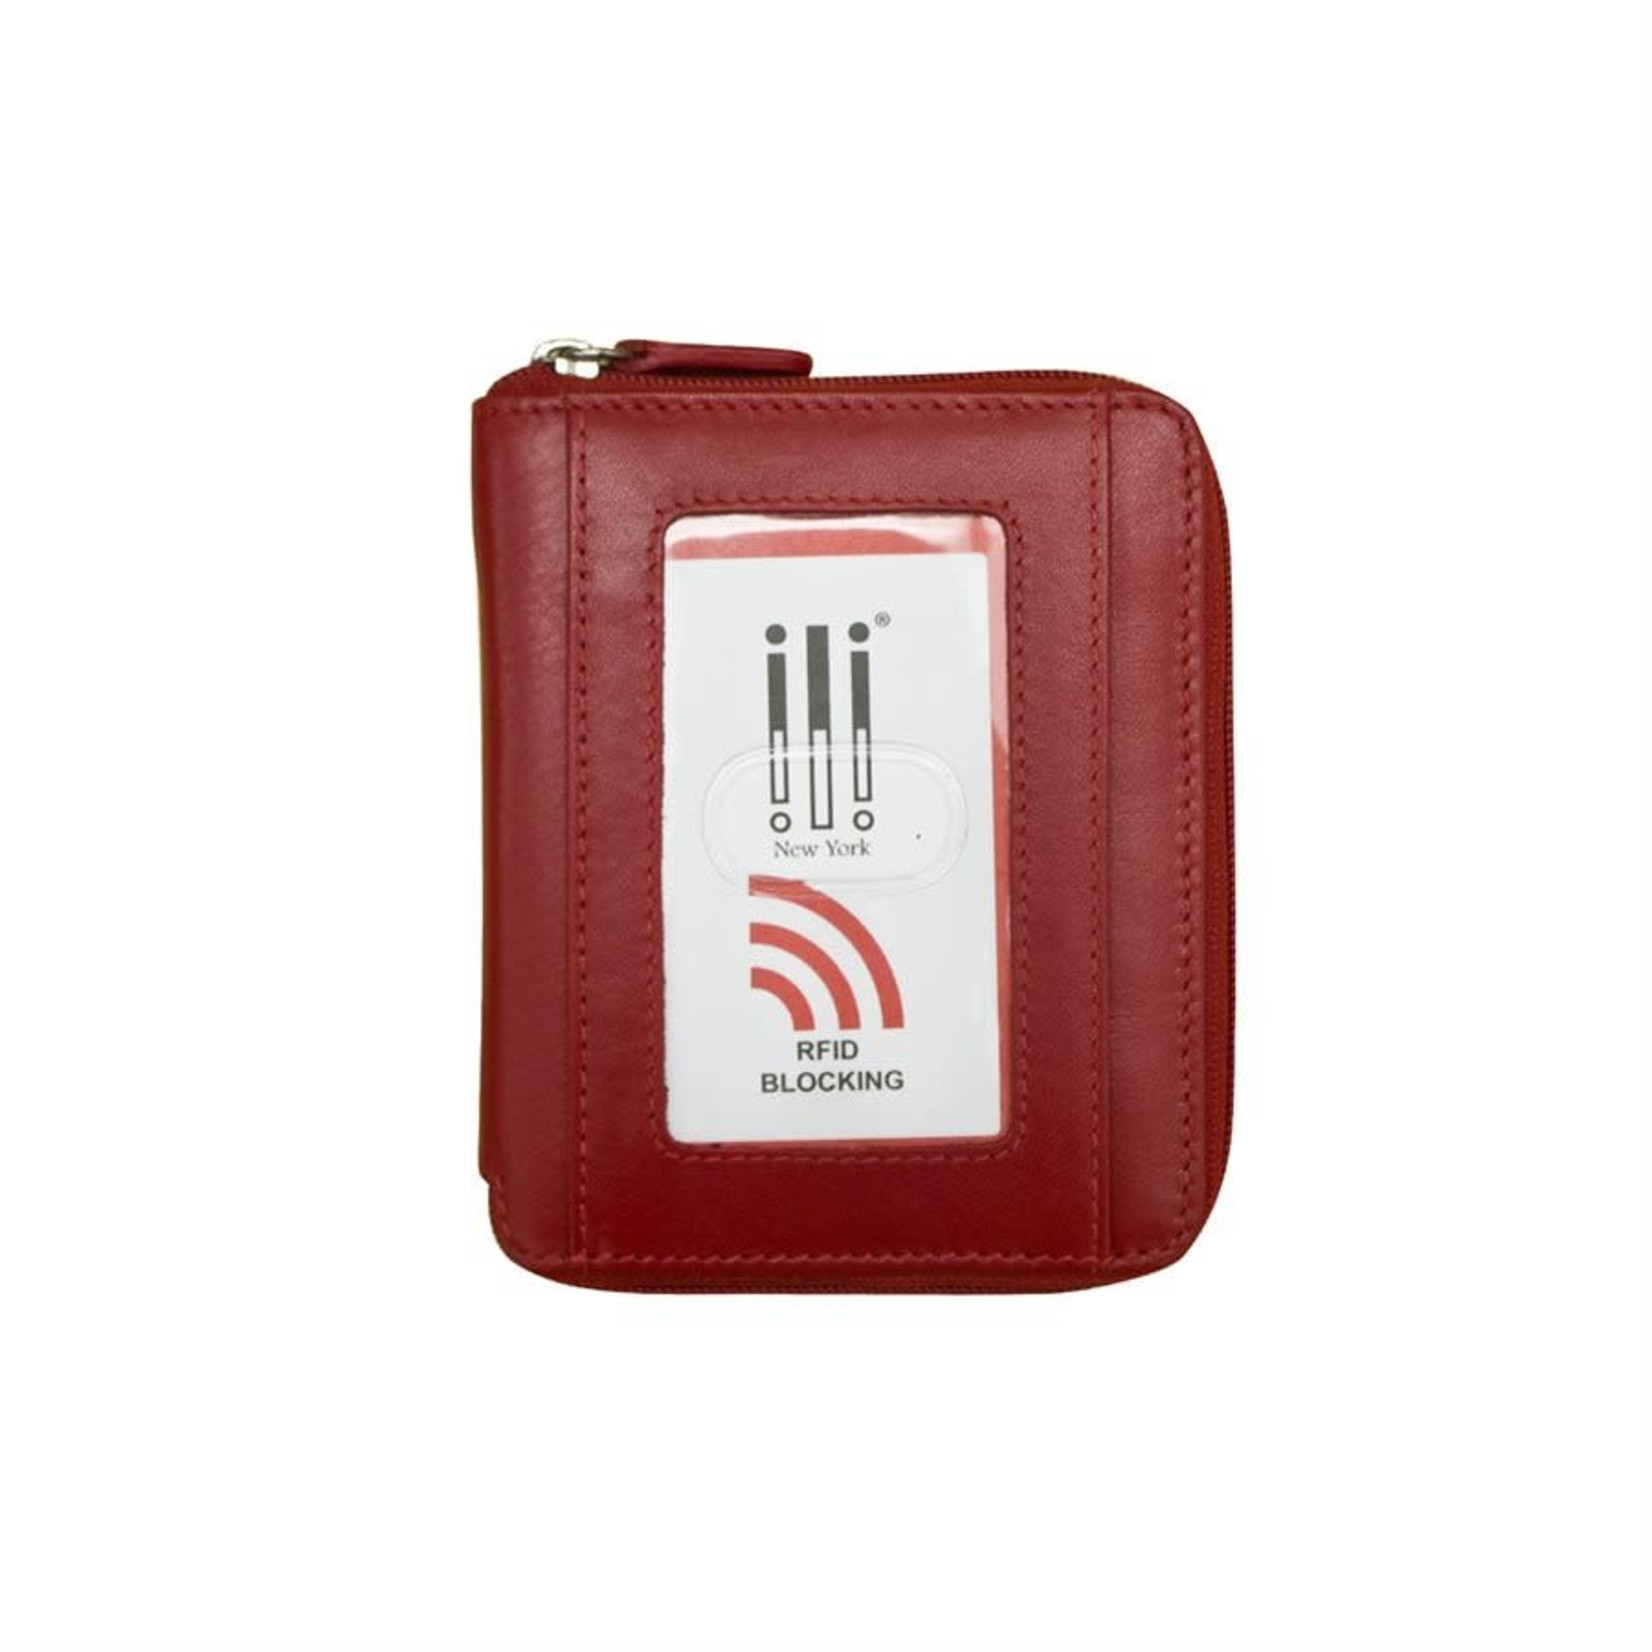 Leather Handbags and Accessories 7859 Red - RFID Zip Around Wallet